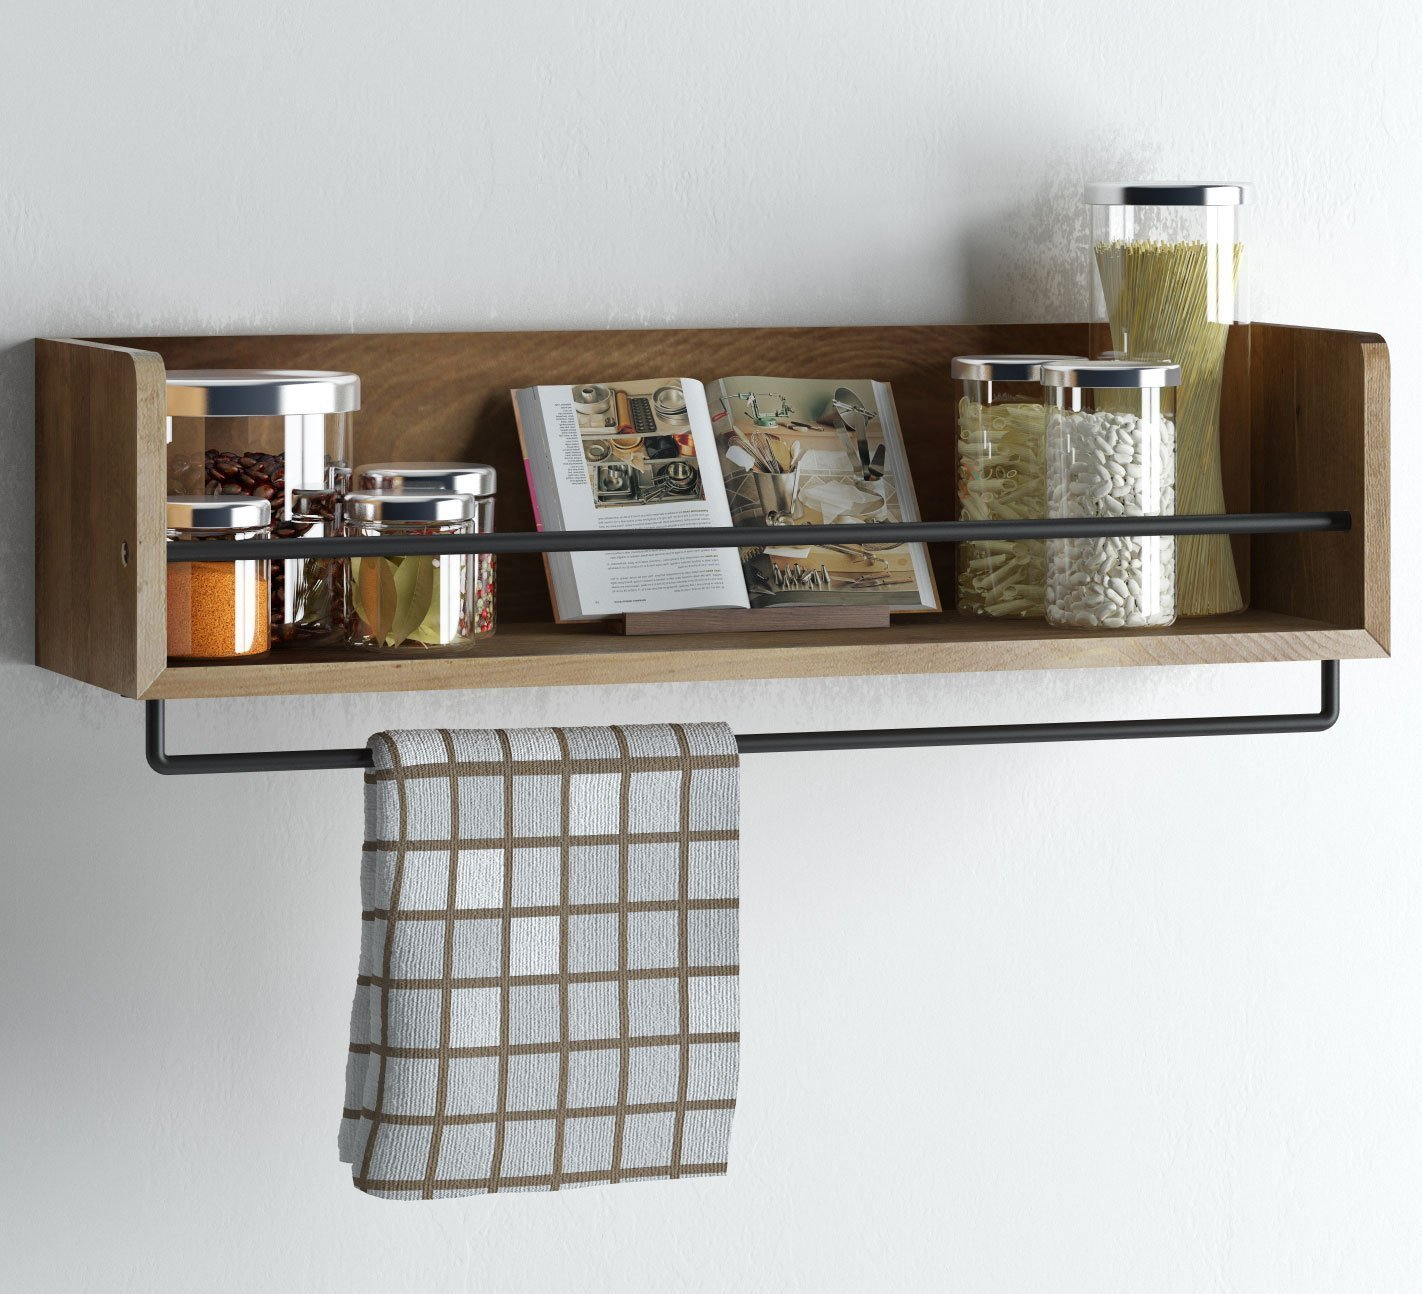 Best Kitchen Wall Shelves - Top 10 Wall Mounted Storage ...